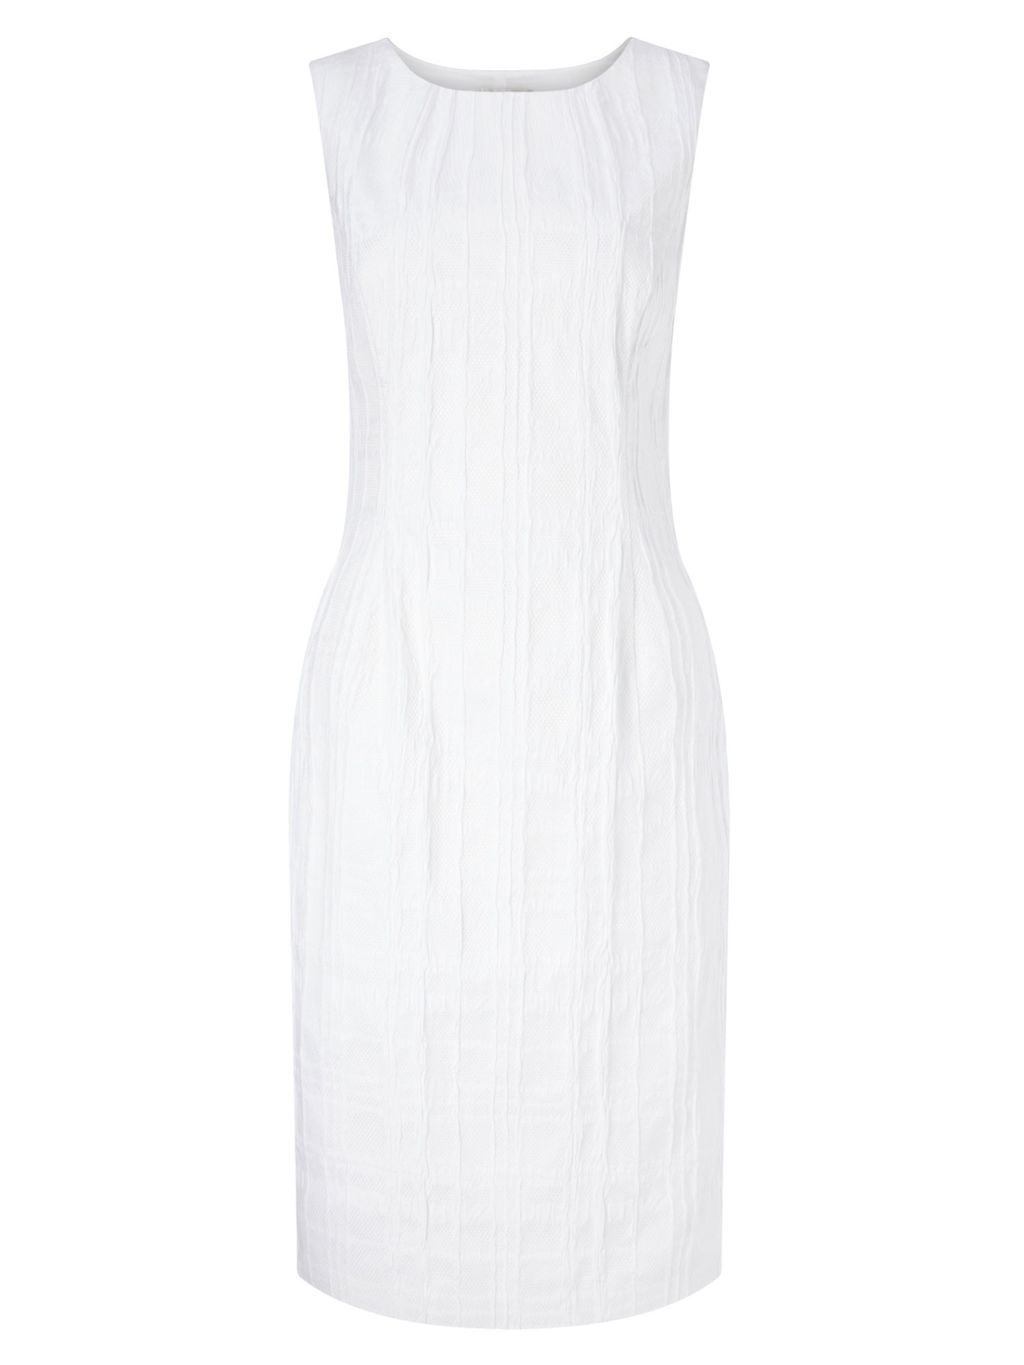 Textured Shift Dress, Ivory - style: shift; neckline: round neck; fit: tailored/fitted; pattern: plain; sleeve style: sleeveless; predominant colour: white; occasions: casual, occasion, creative work; length: just above the knee; fibres: cotton - stretch; sleeve length: sleeveless; texture group: cotton feel fabrics; pattern type: fabric; season: s/s 2016; wardrobe: basic